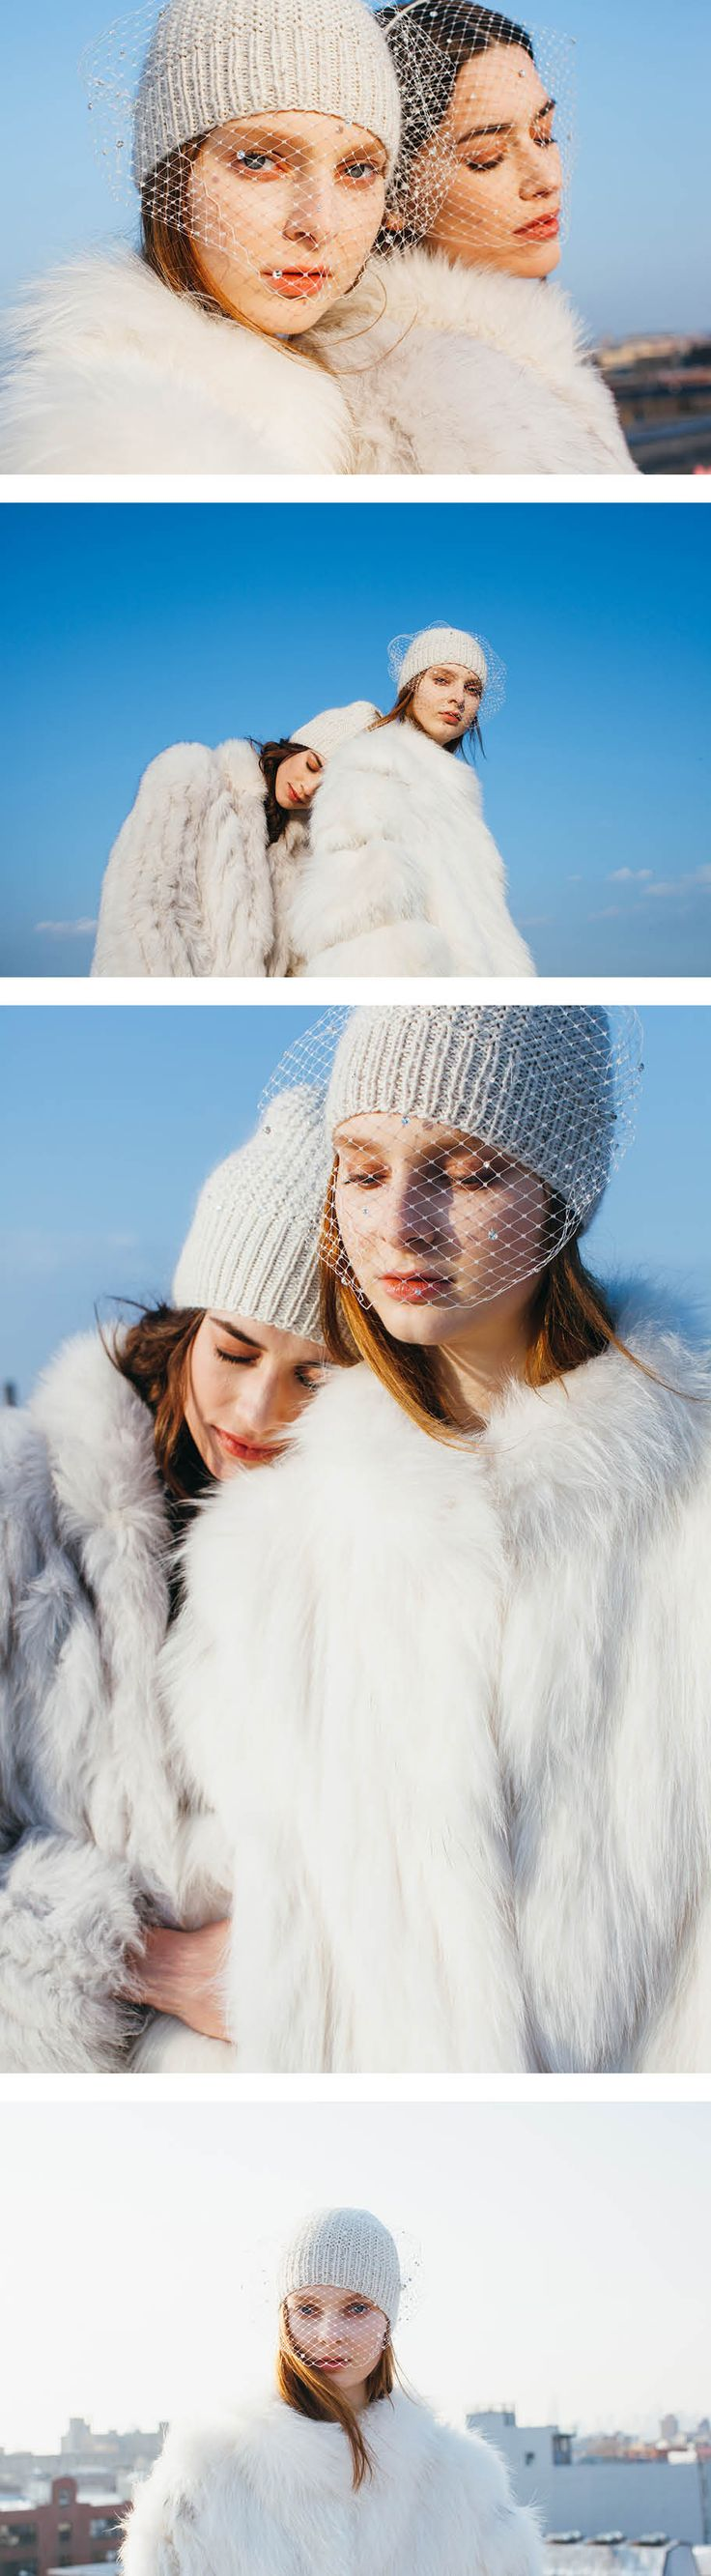 Swarovski crystal embellished knit hats by Jennifer Behr are perfect for cold weather dressing. Pair with your favorite camel winter coat. Shop the look at www.jenniferbehr.com